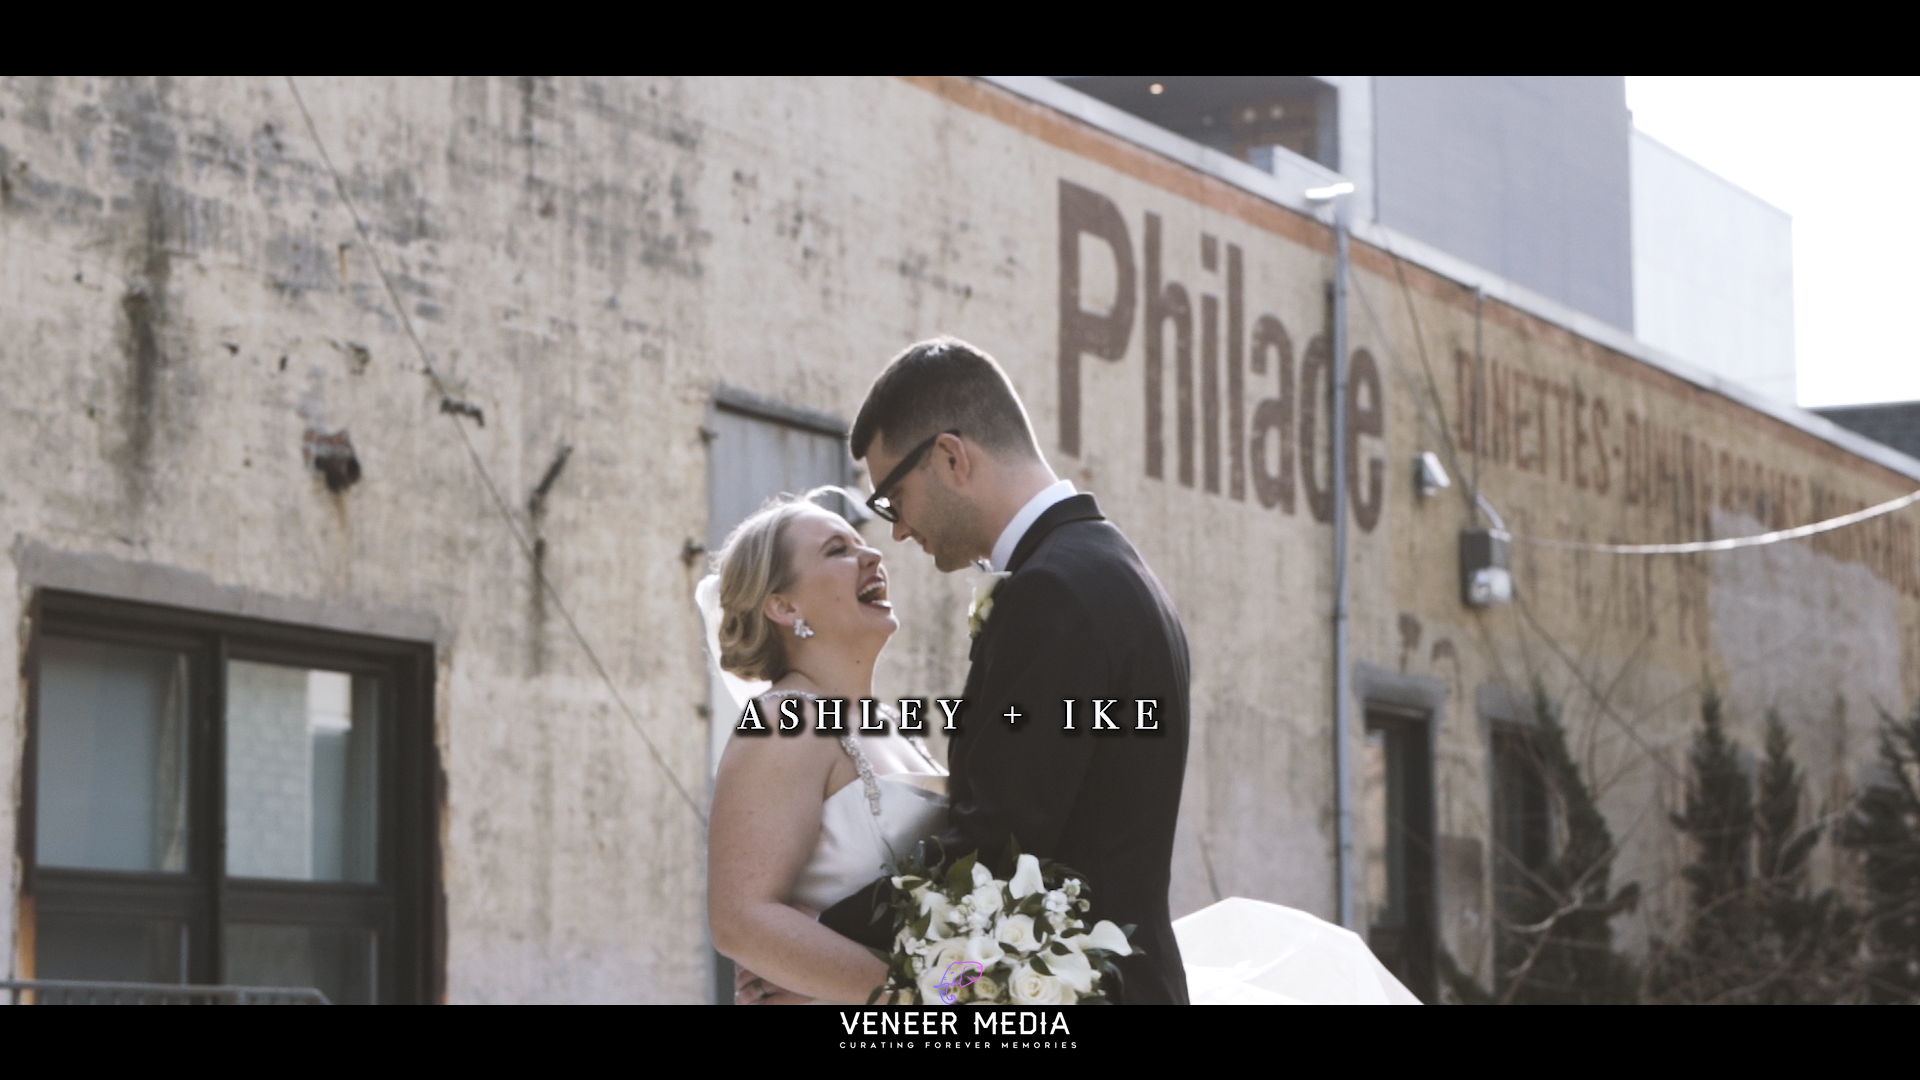 Ike + Ashley | Philadelphia, Pennsylvania | Tendenza